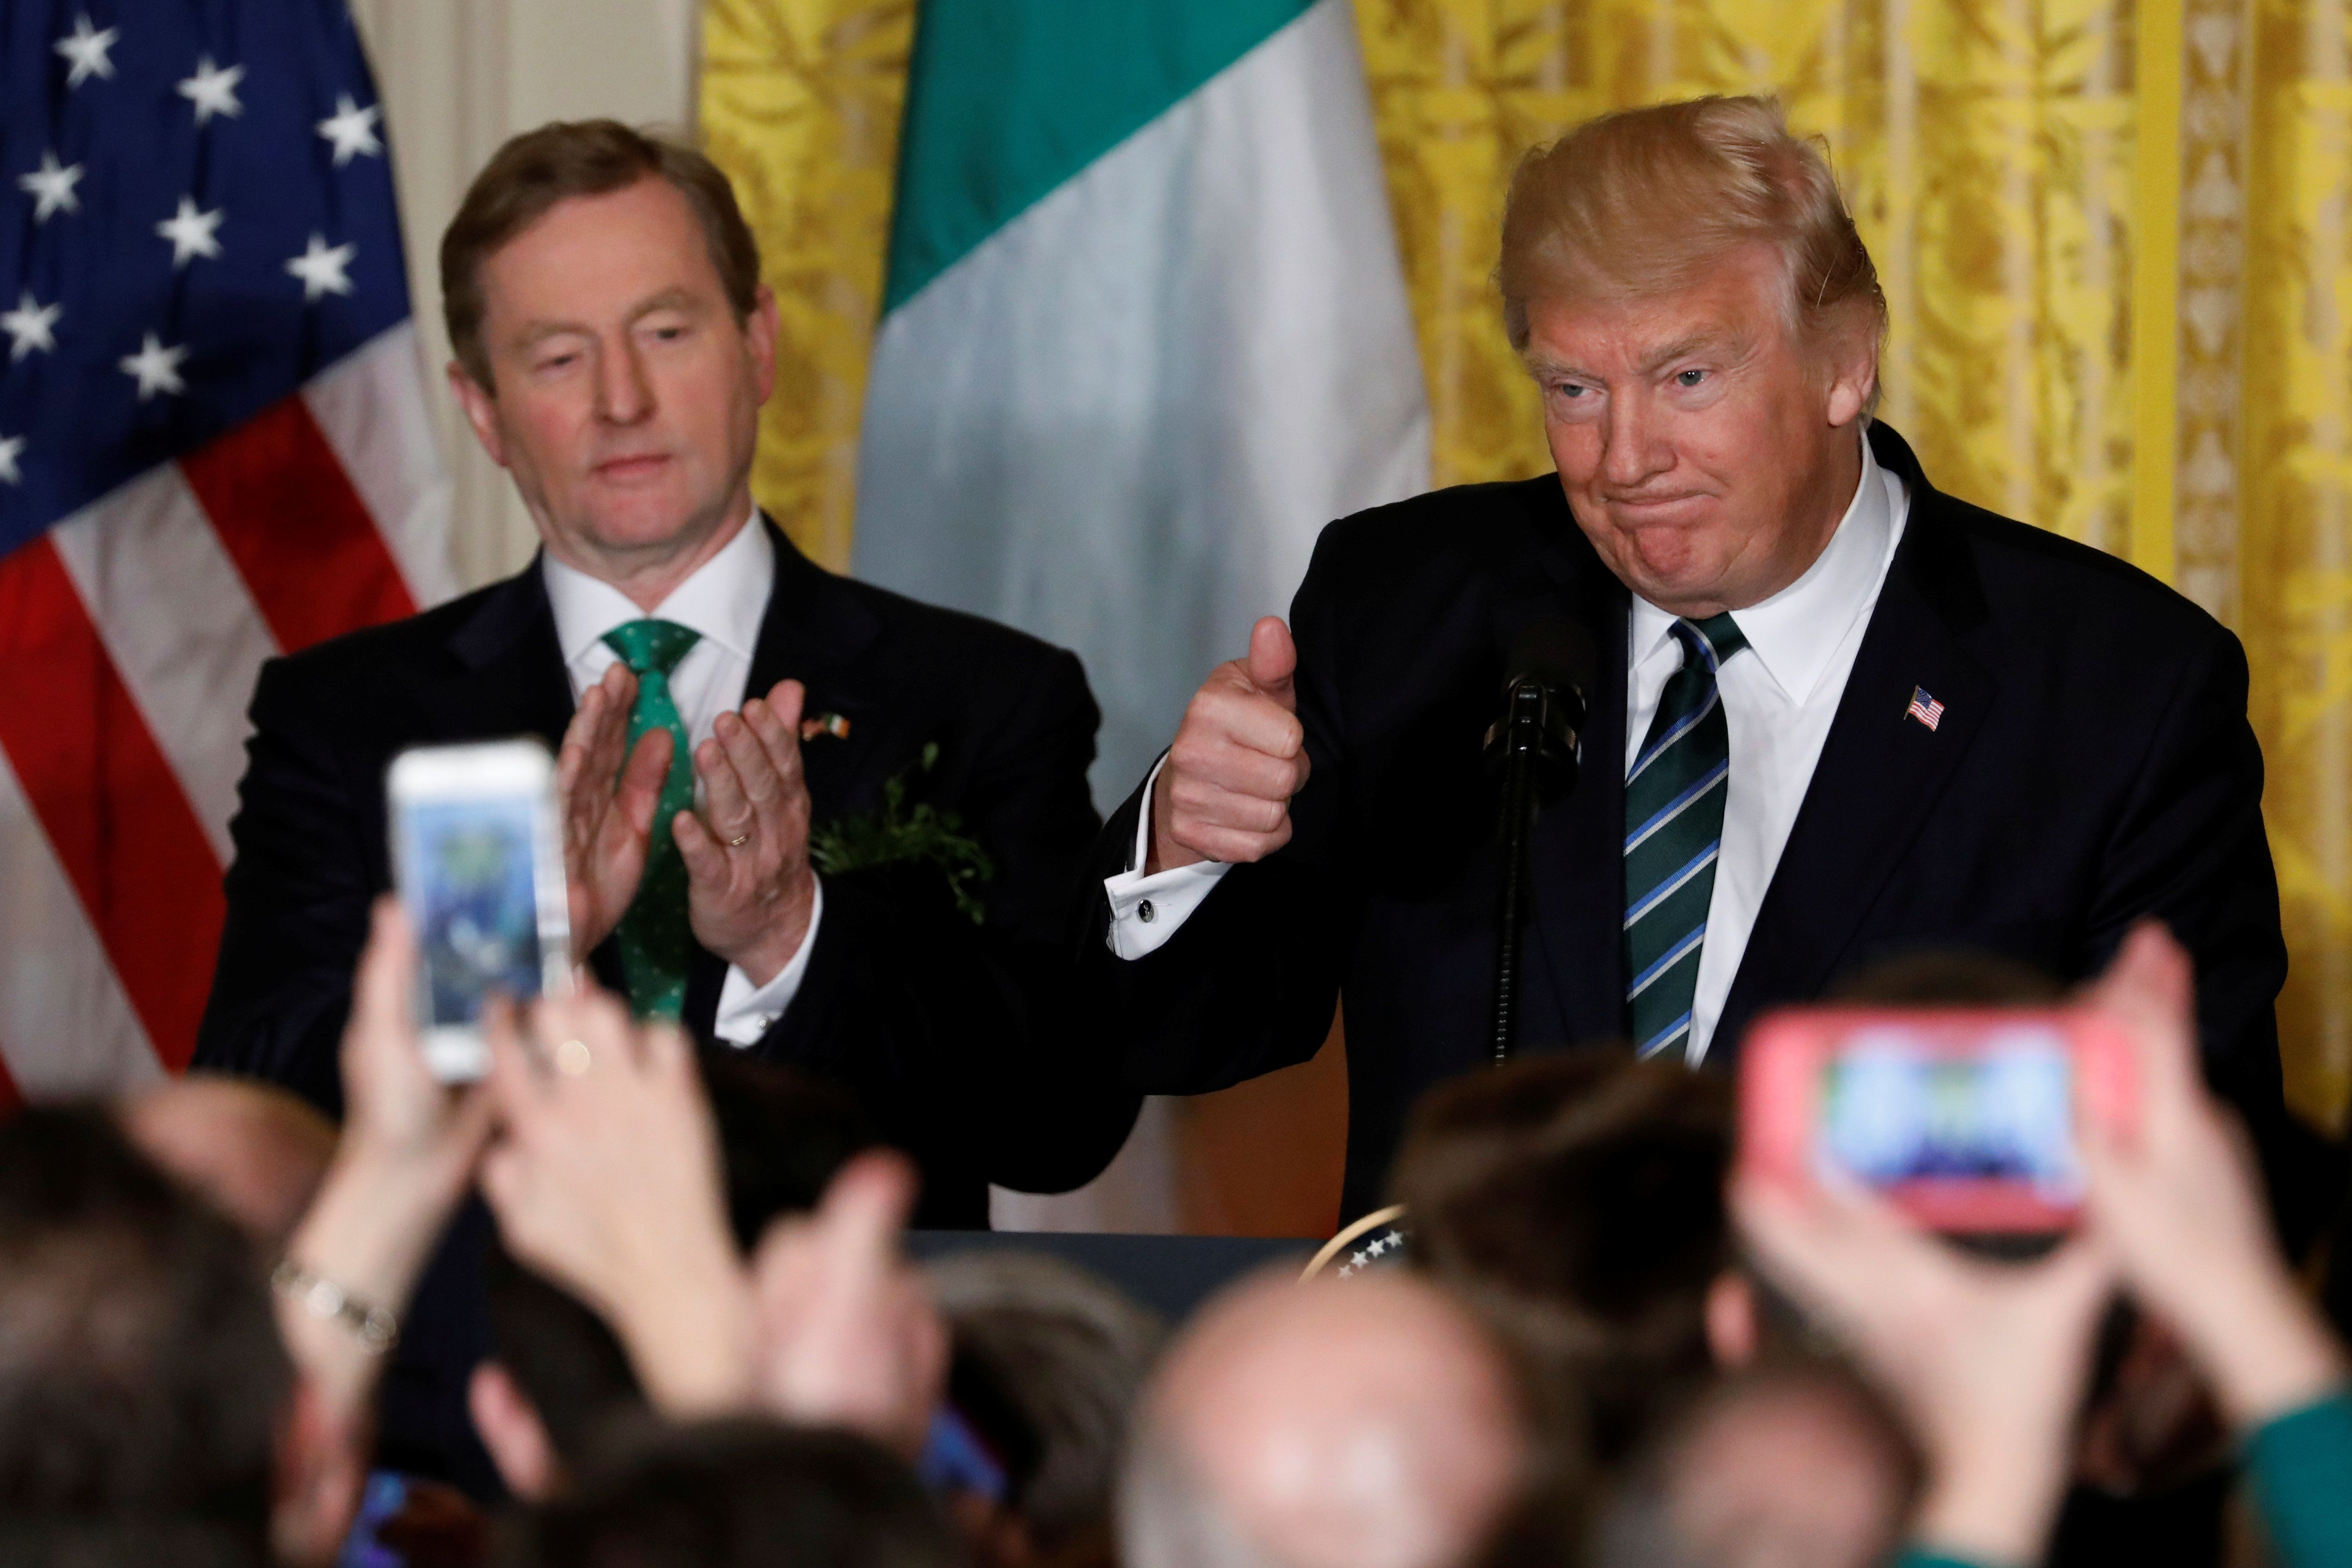 U.S. President Donald Trump (R) delivers remarks alongside Ireland's Prime Minister Enda Kenny (L) at a St. Patrick's Day reception at the White House in Washington, U.S. March 16, 2017. REUTERS/Jonathan Ernst